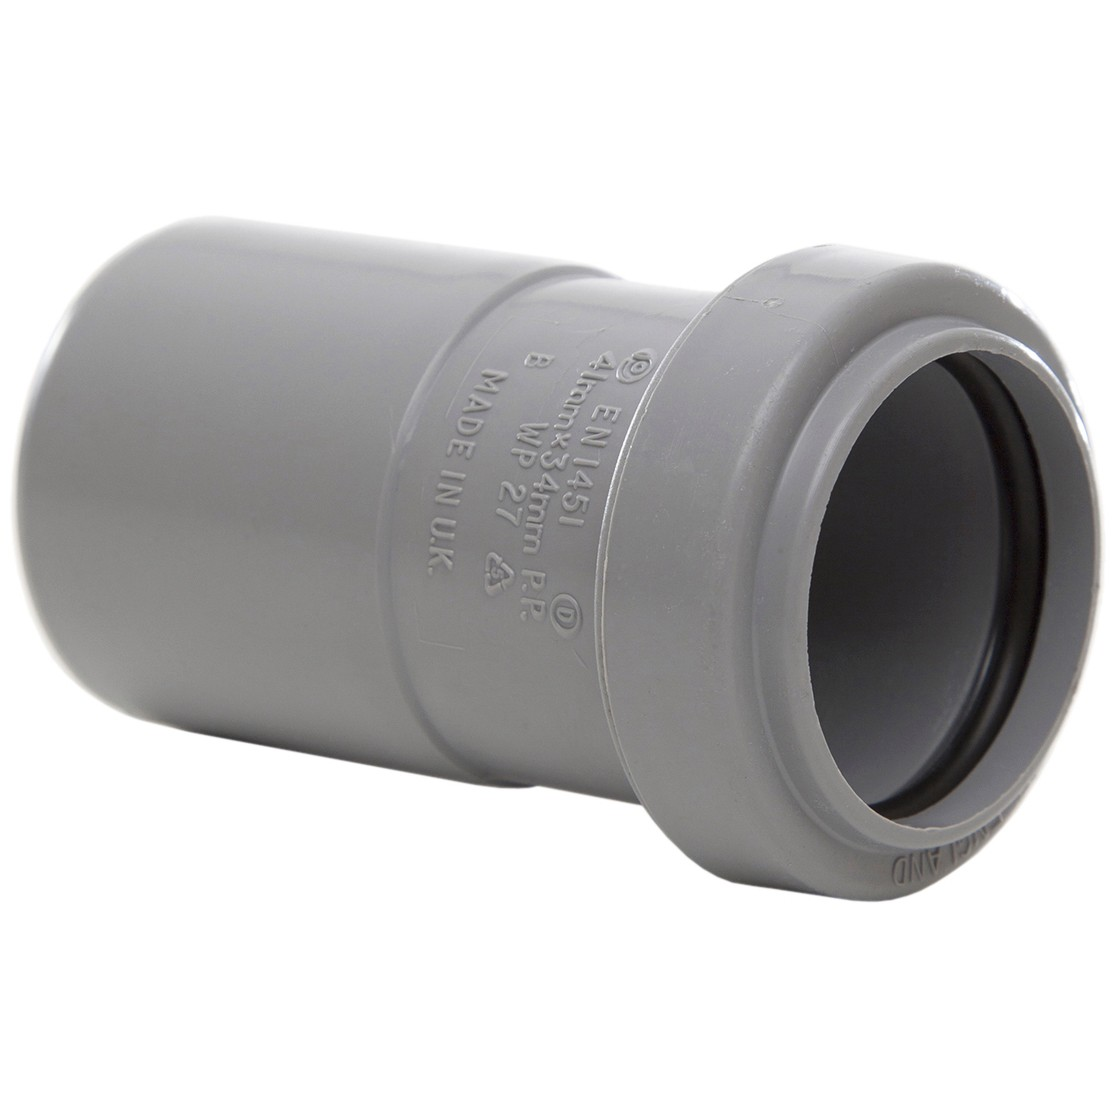 Polypipe 40mm to 32mm Push Fit Waste Reducer - Grey